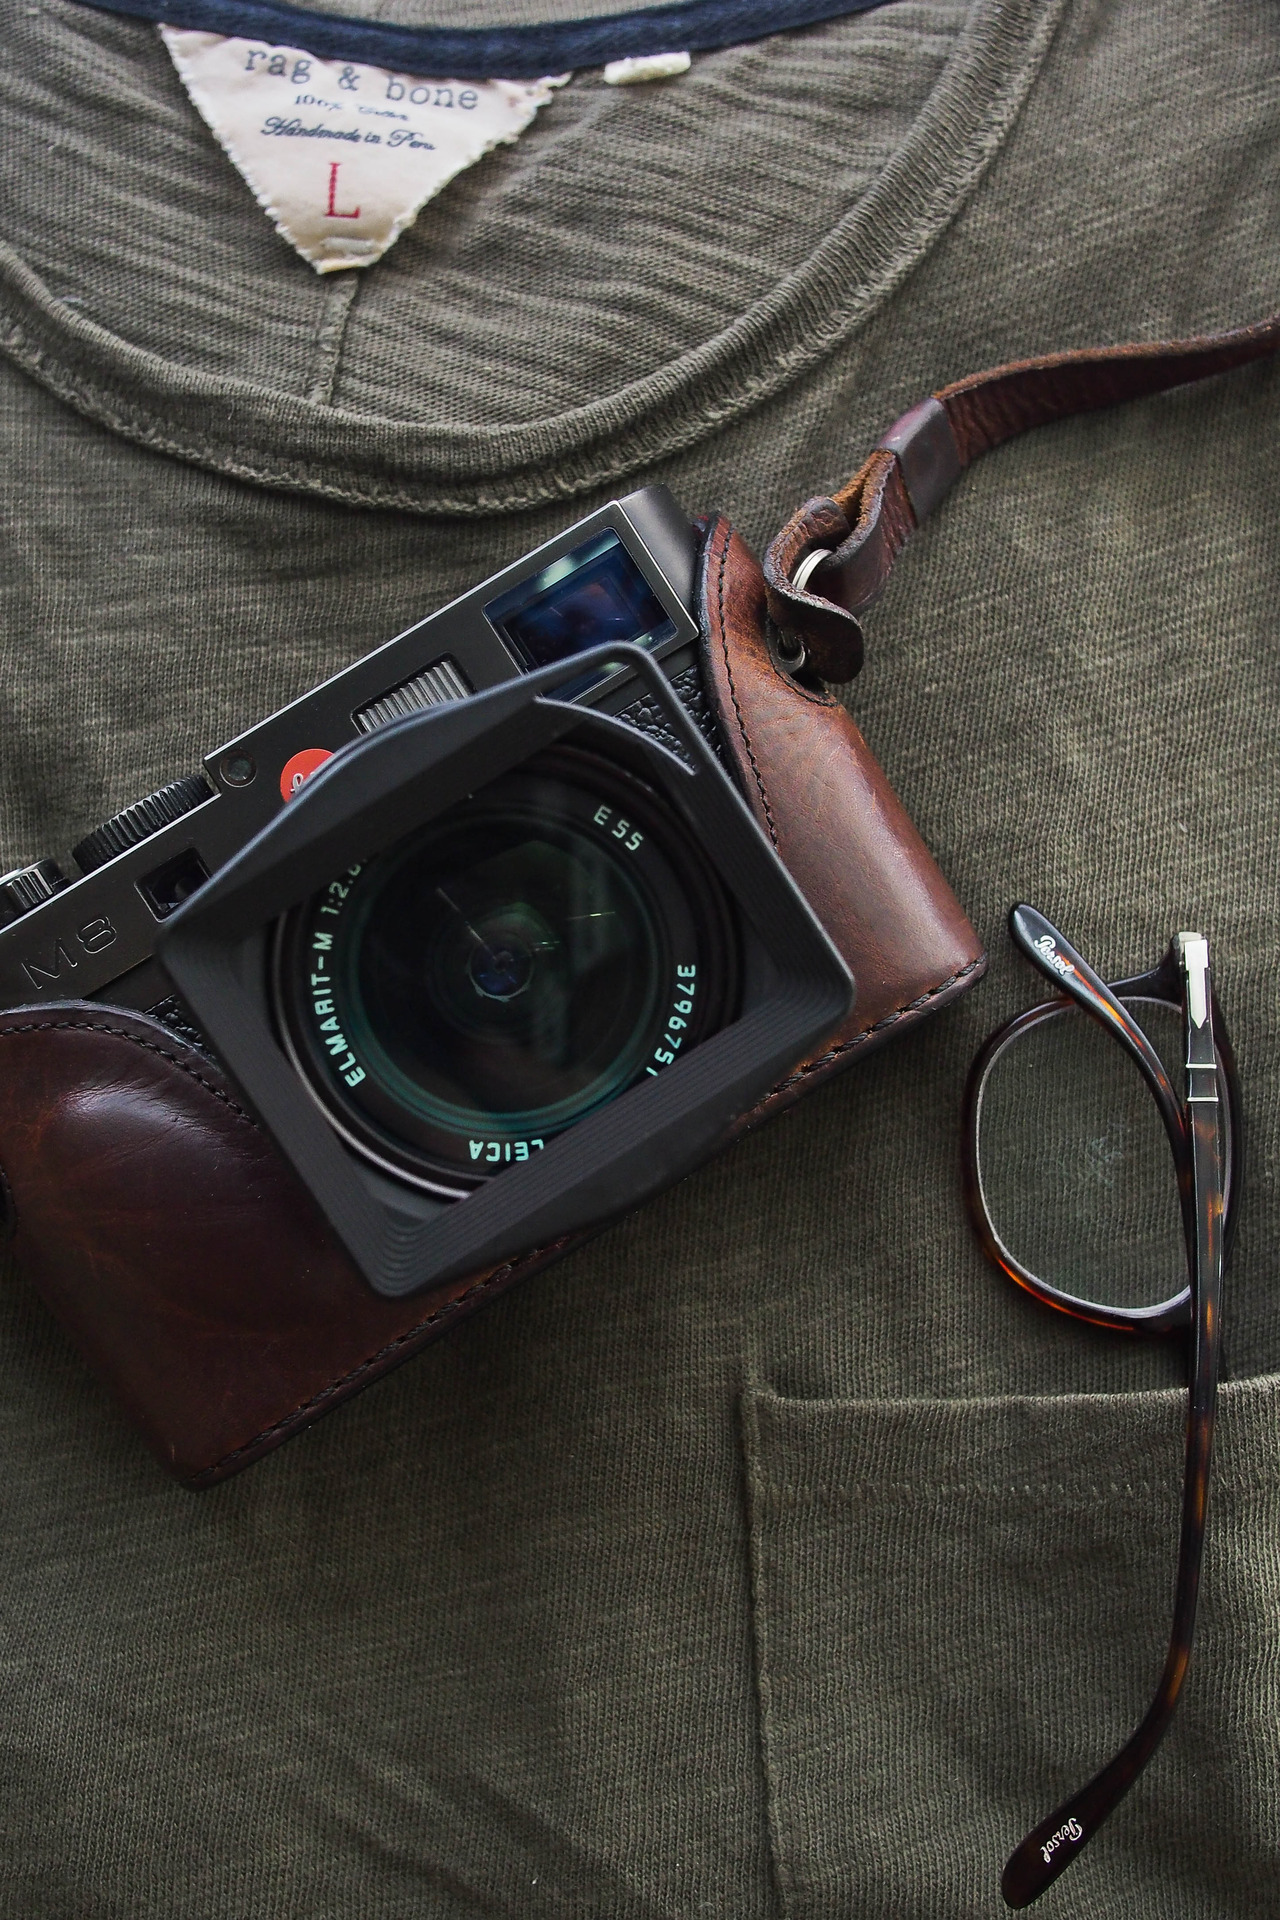 Leica in leather